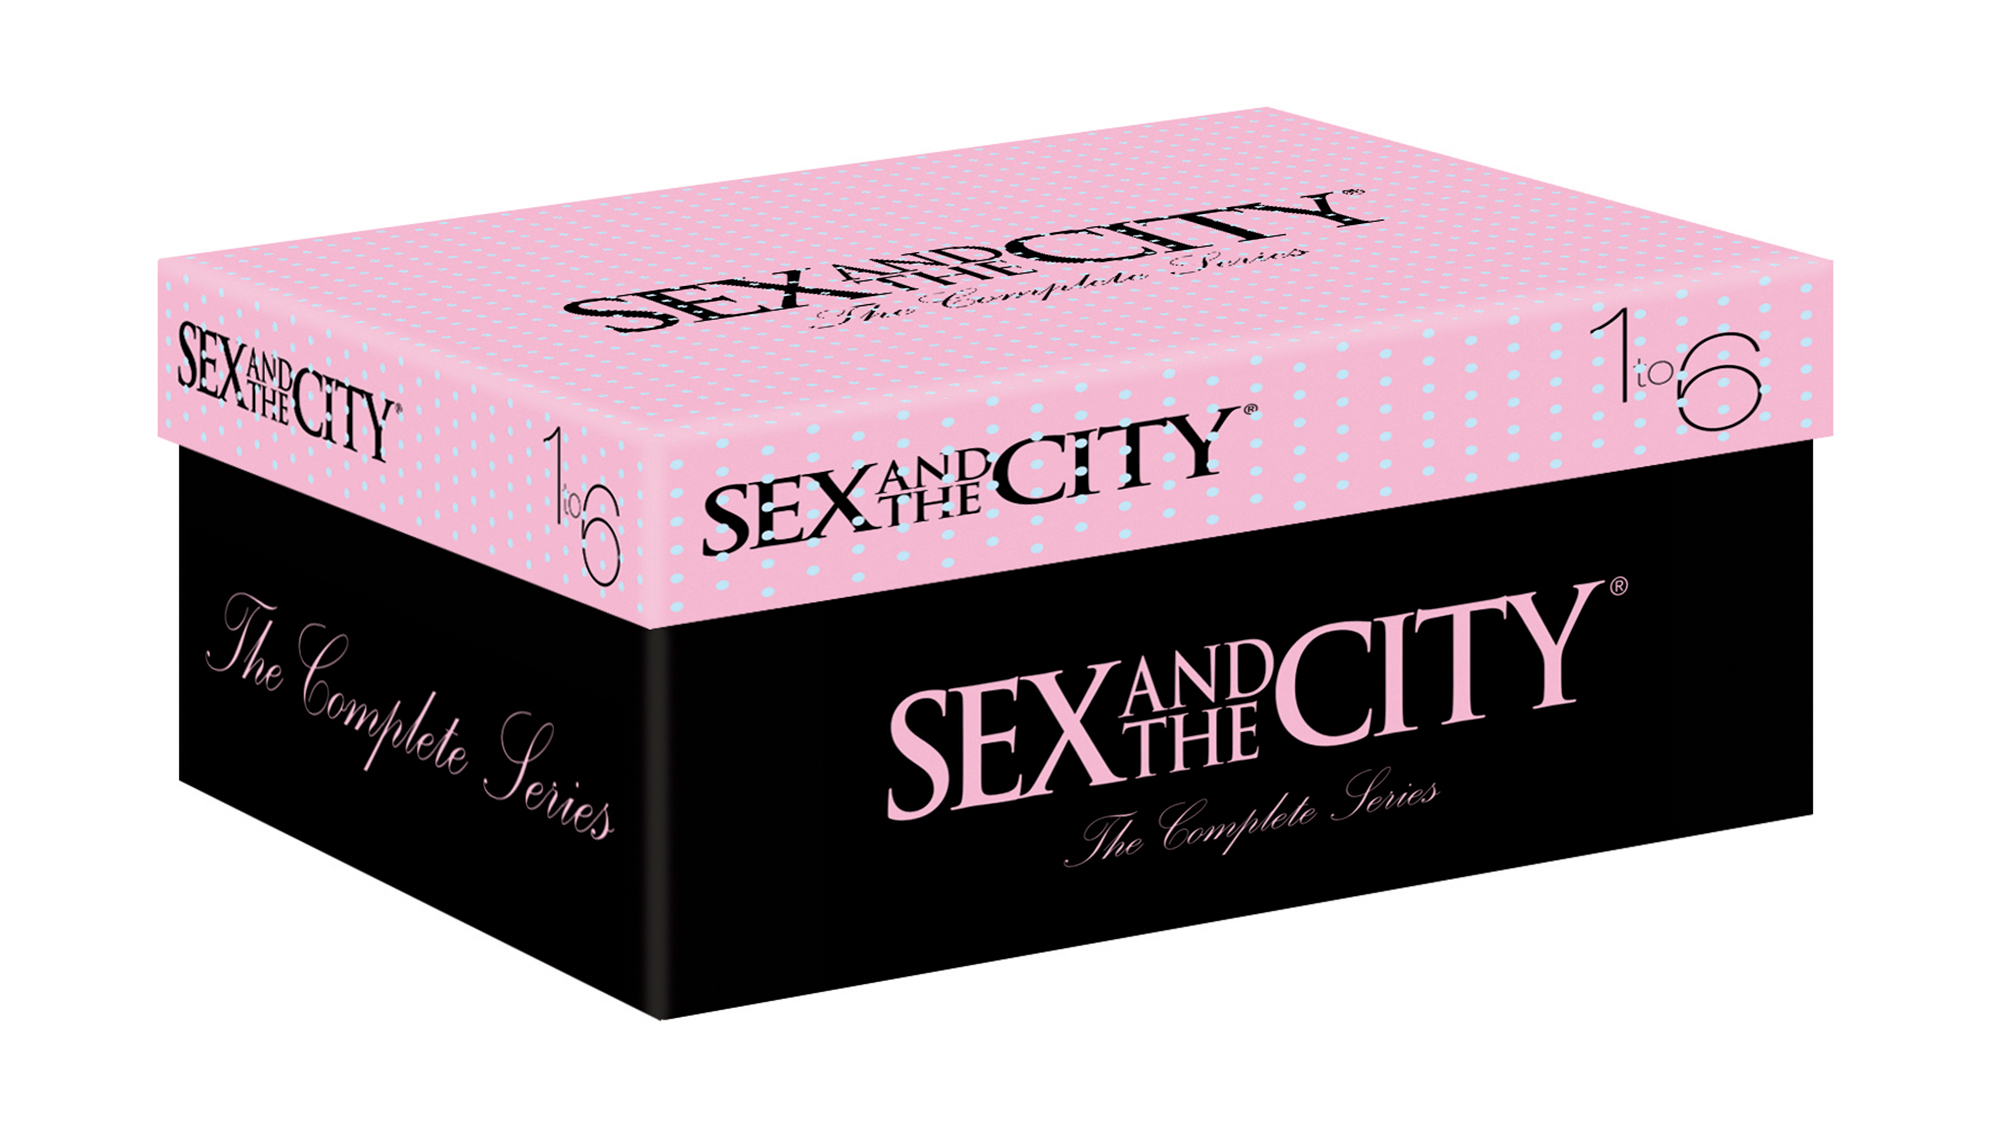 city dvd Sex in set the